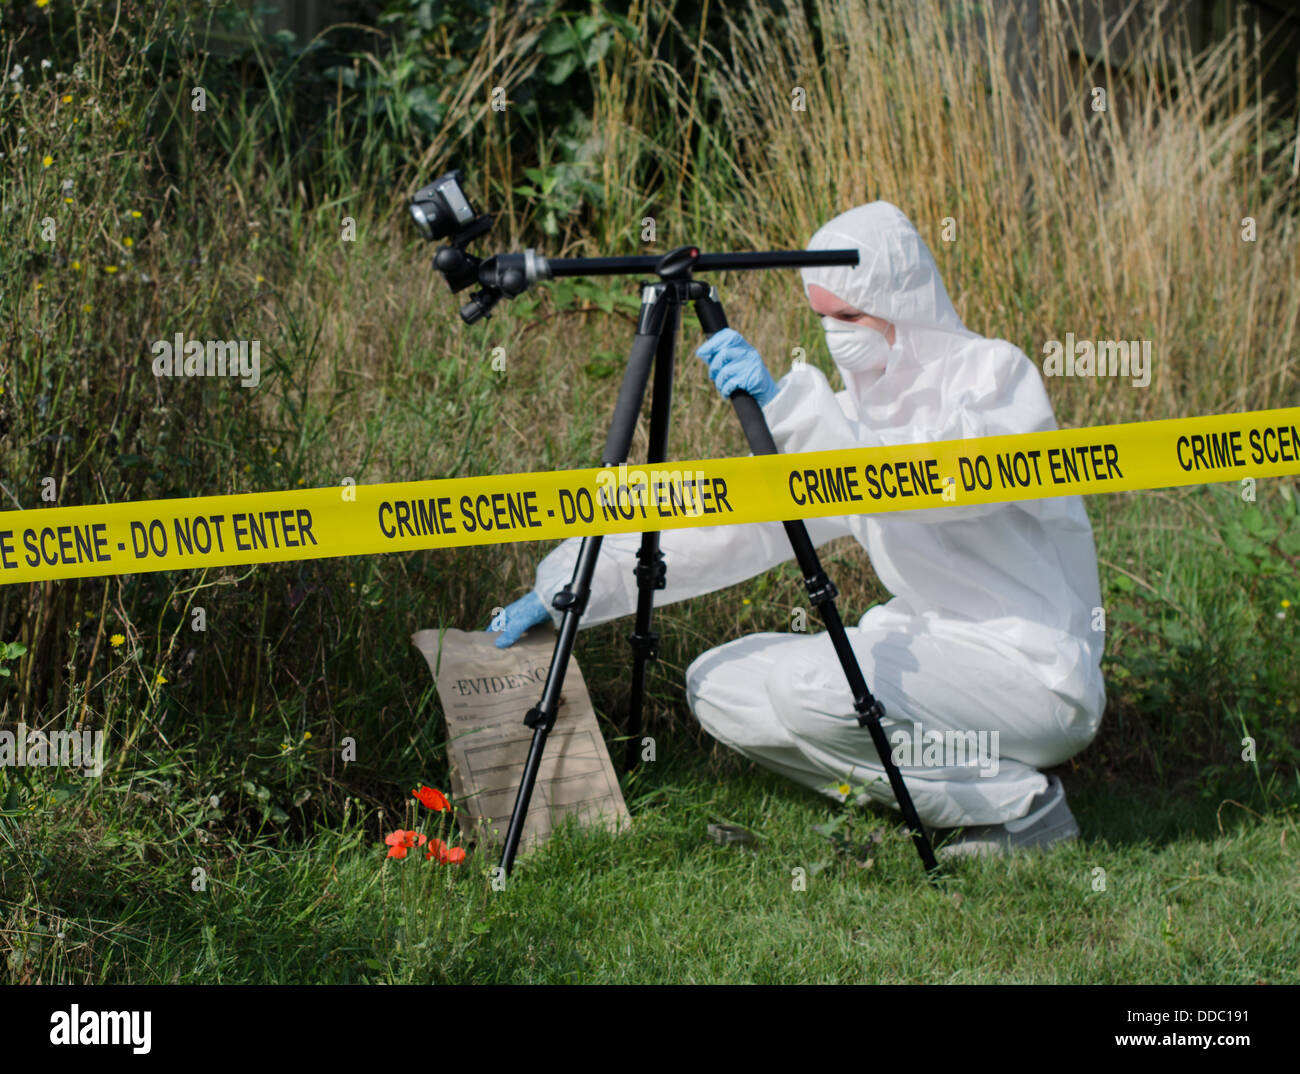 Forensic scientist checking for evidence behind a crime scene barrier - Stock Image